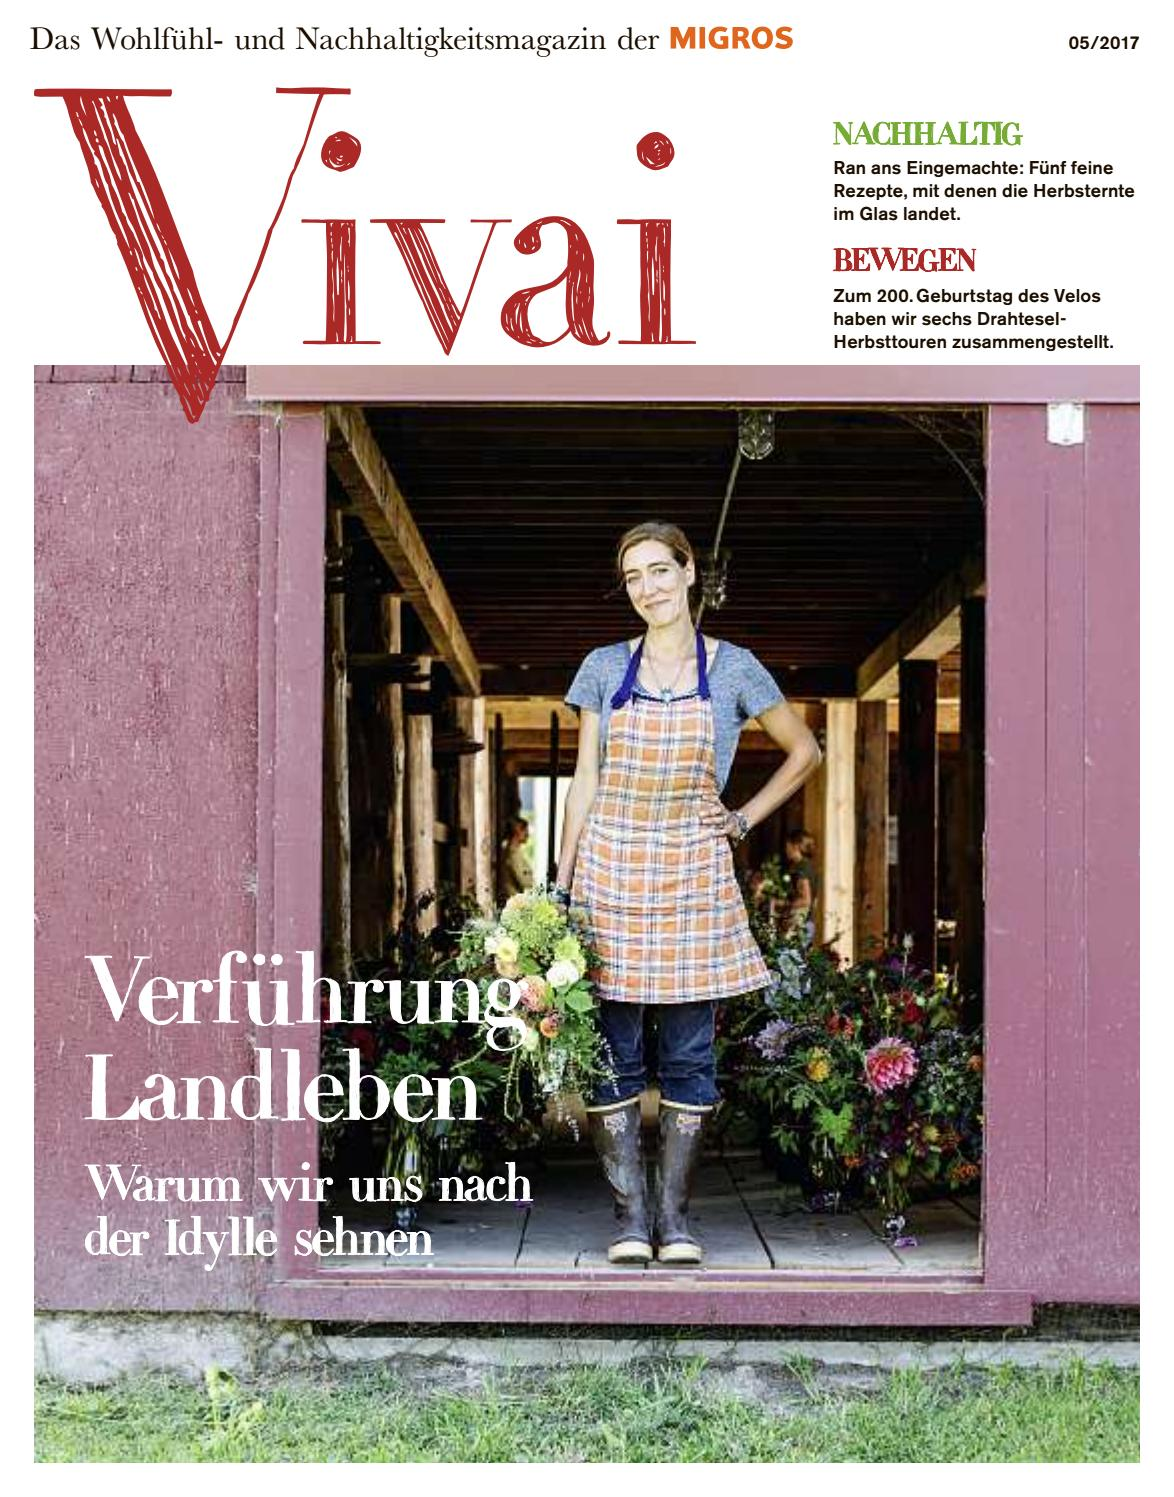 Vivai d 05 2017 by Migros - issuu